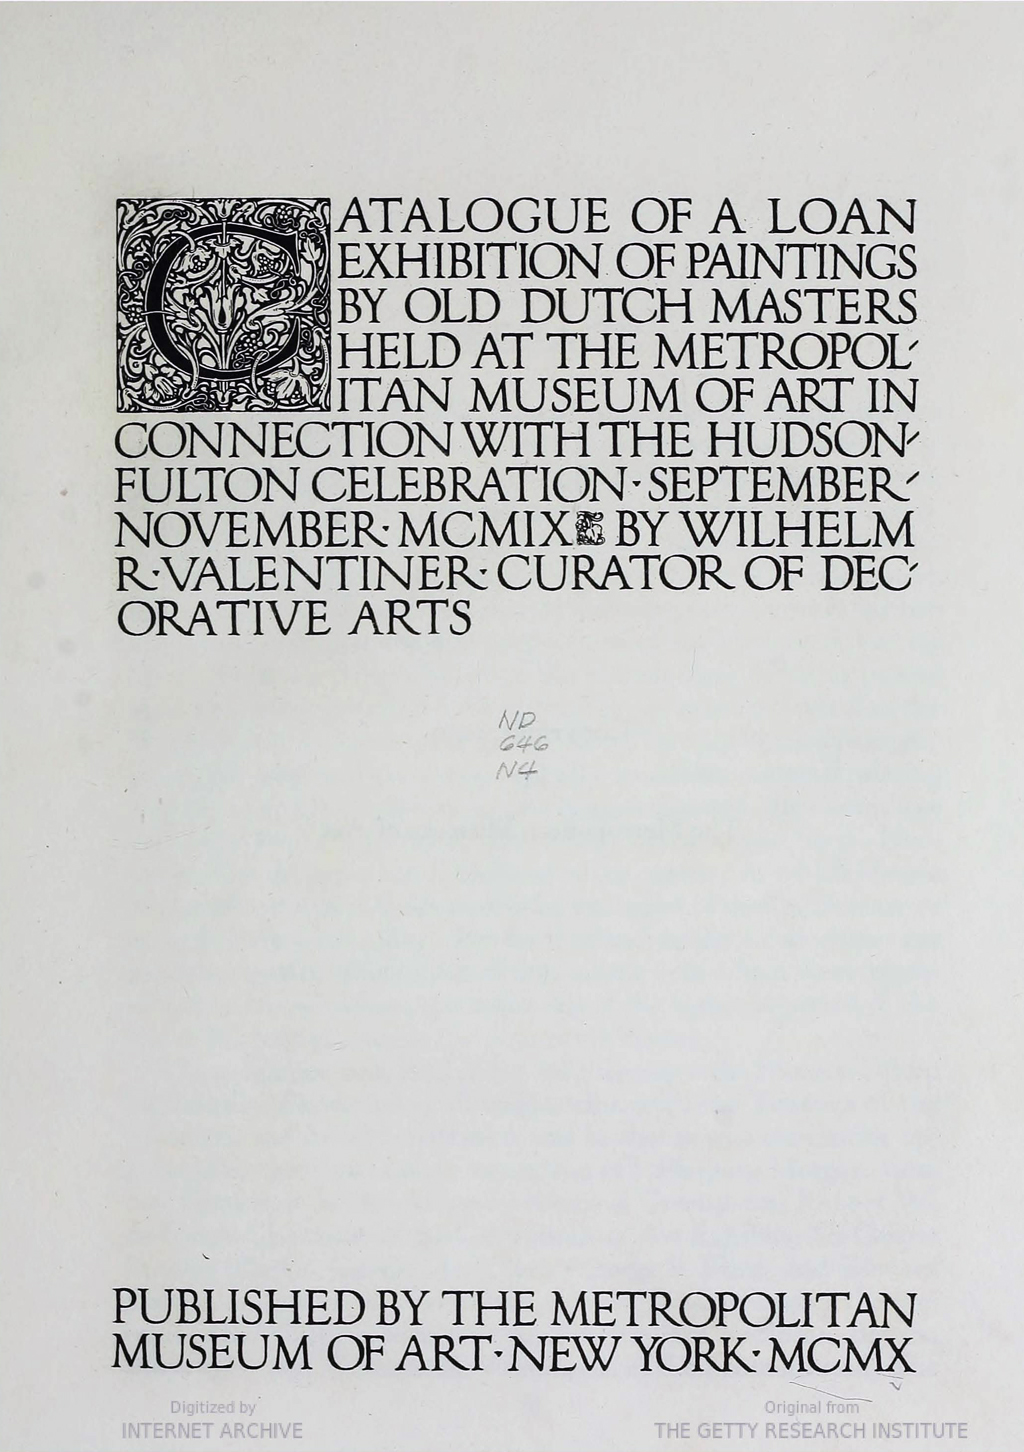 Title page for a Catalogue of a Loan Exhibition of Paintings by Old Dutch Masters (New York: Metropolitan Museum of Art, 1910). Design, initial and lettering by Frederic W. Goudy. The entire text is hand lettered.